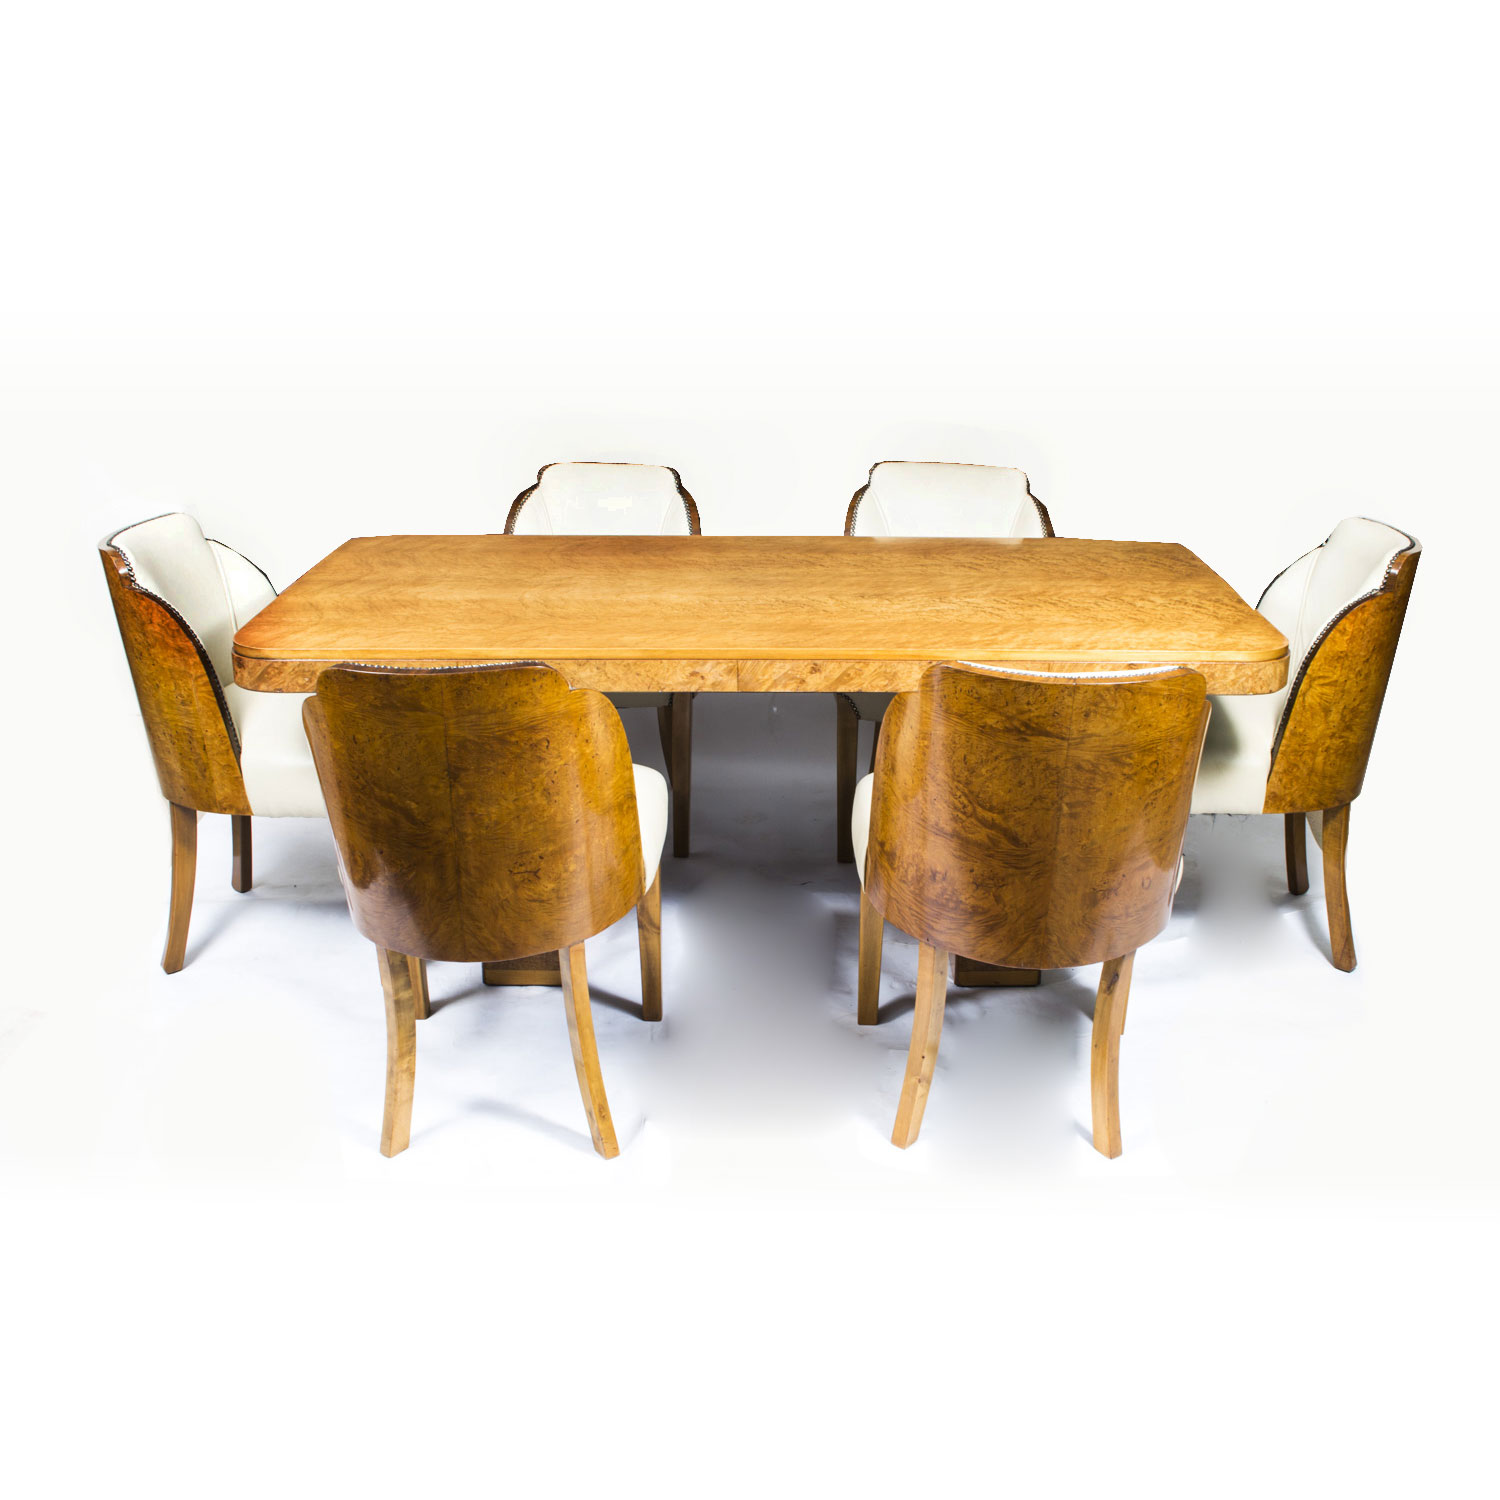 07006 Antique Art Deco Dining Table 6 Cloudback